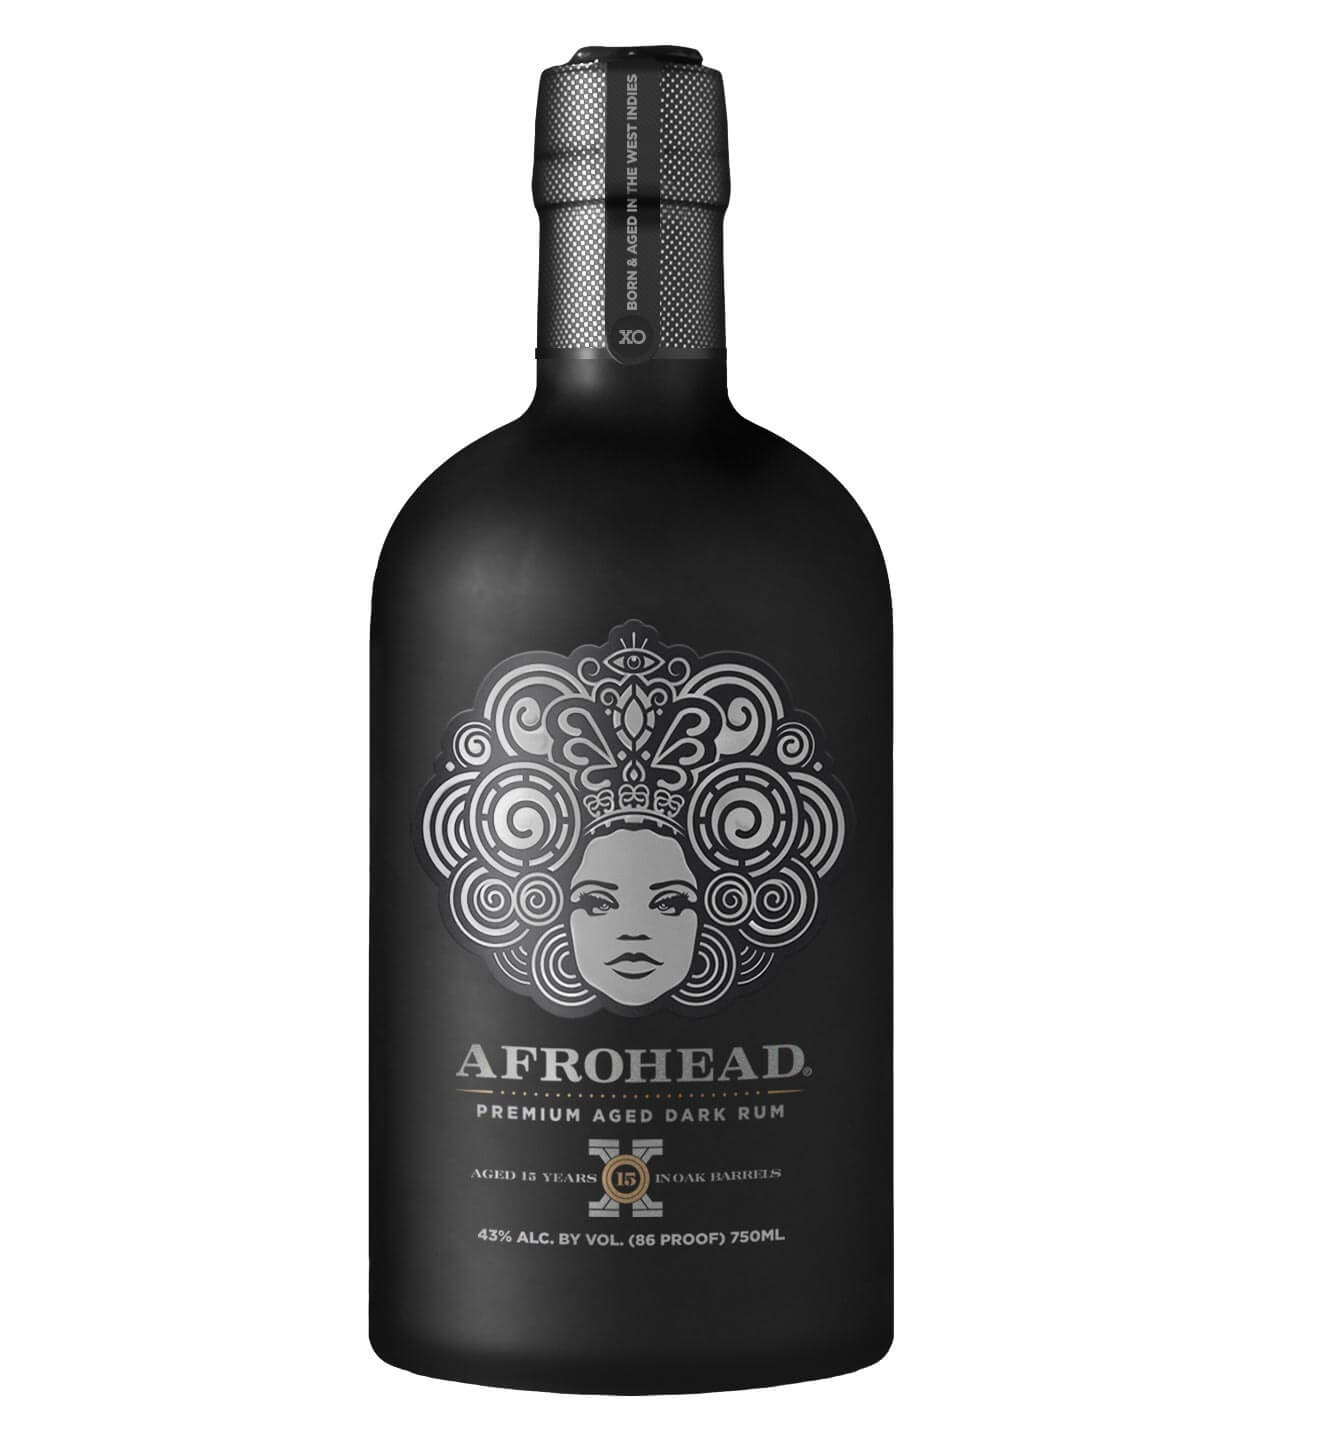 Afrohead Premium Aged Dark Rum, black bottle on white